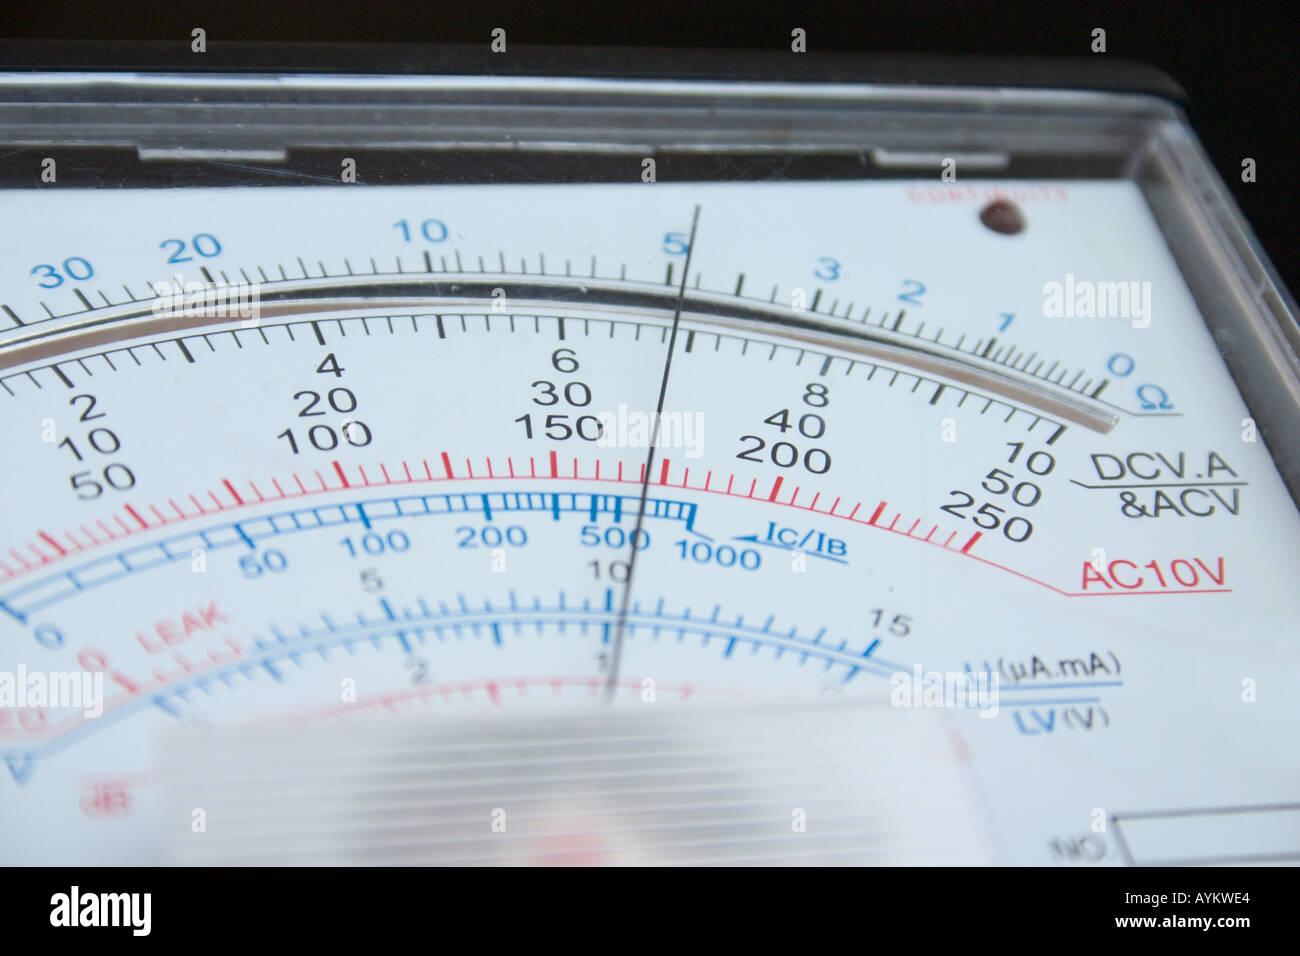 close up of analog multimeter - Stock Image